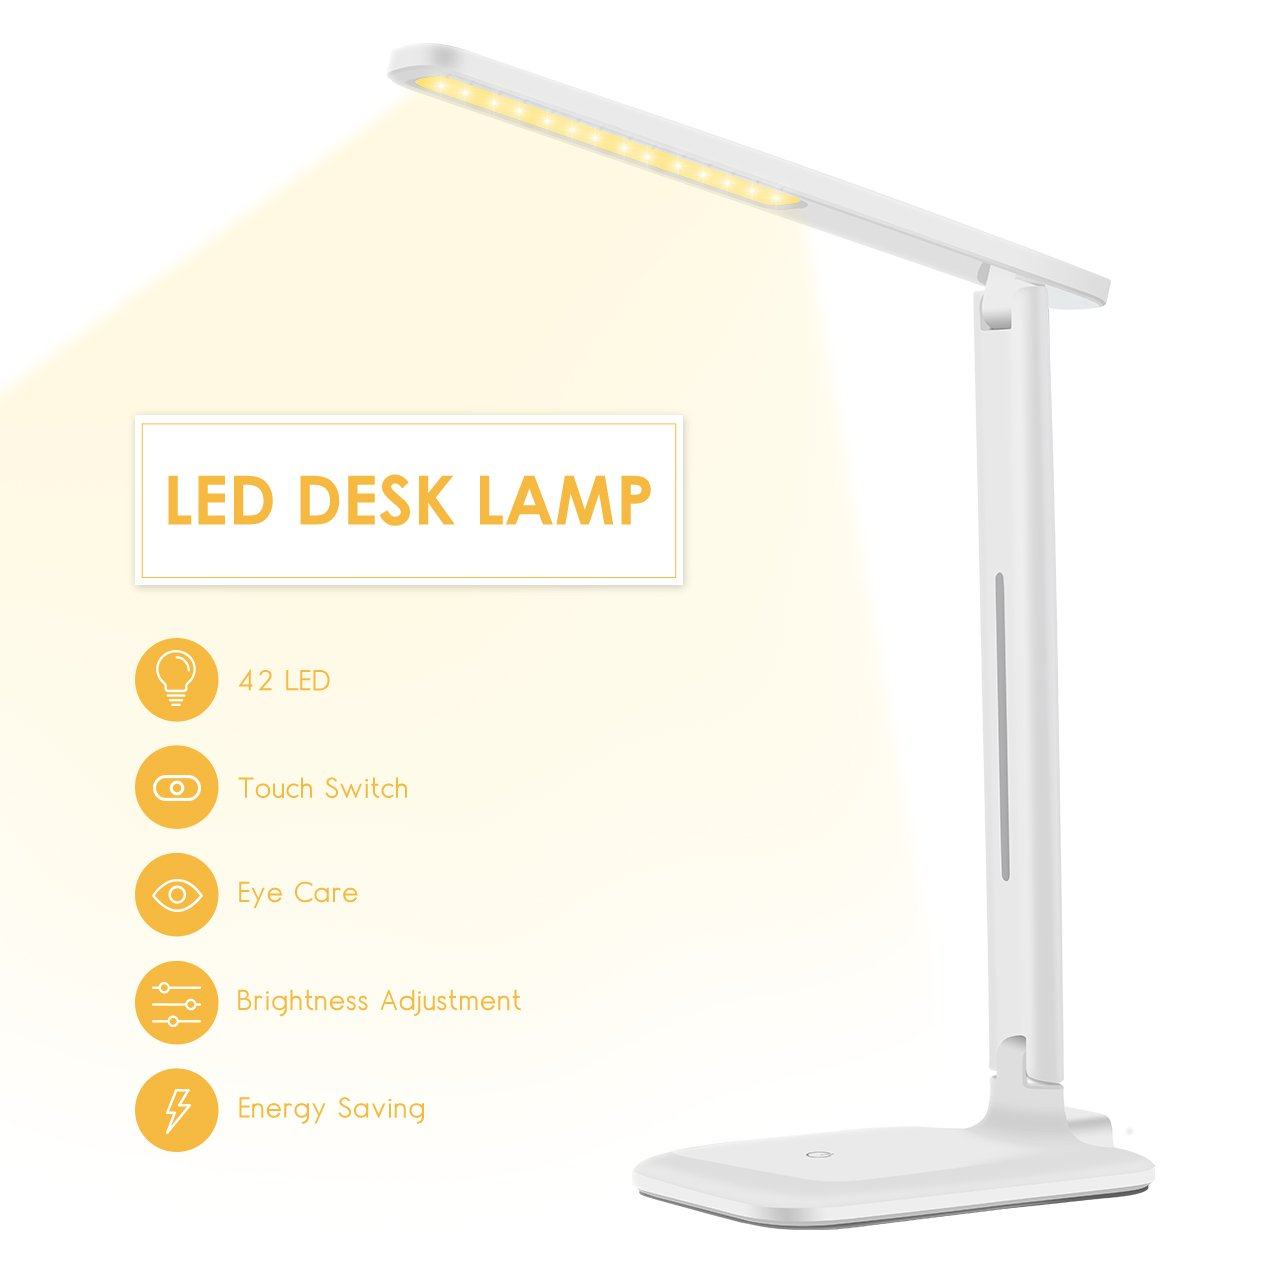 Yantop LED Desk Lamp, Eye-caring Table Lamp, Dimmable Office Study Computer Desk Light, Touch Control, Memory Function, 3 Color Mode & 3 Brightness, Foldable LED Lamp for Reading, Working, White